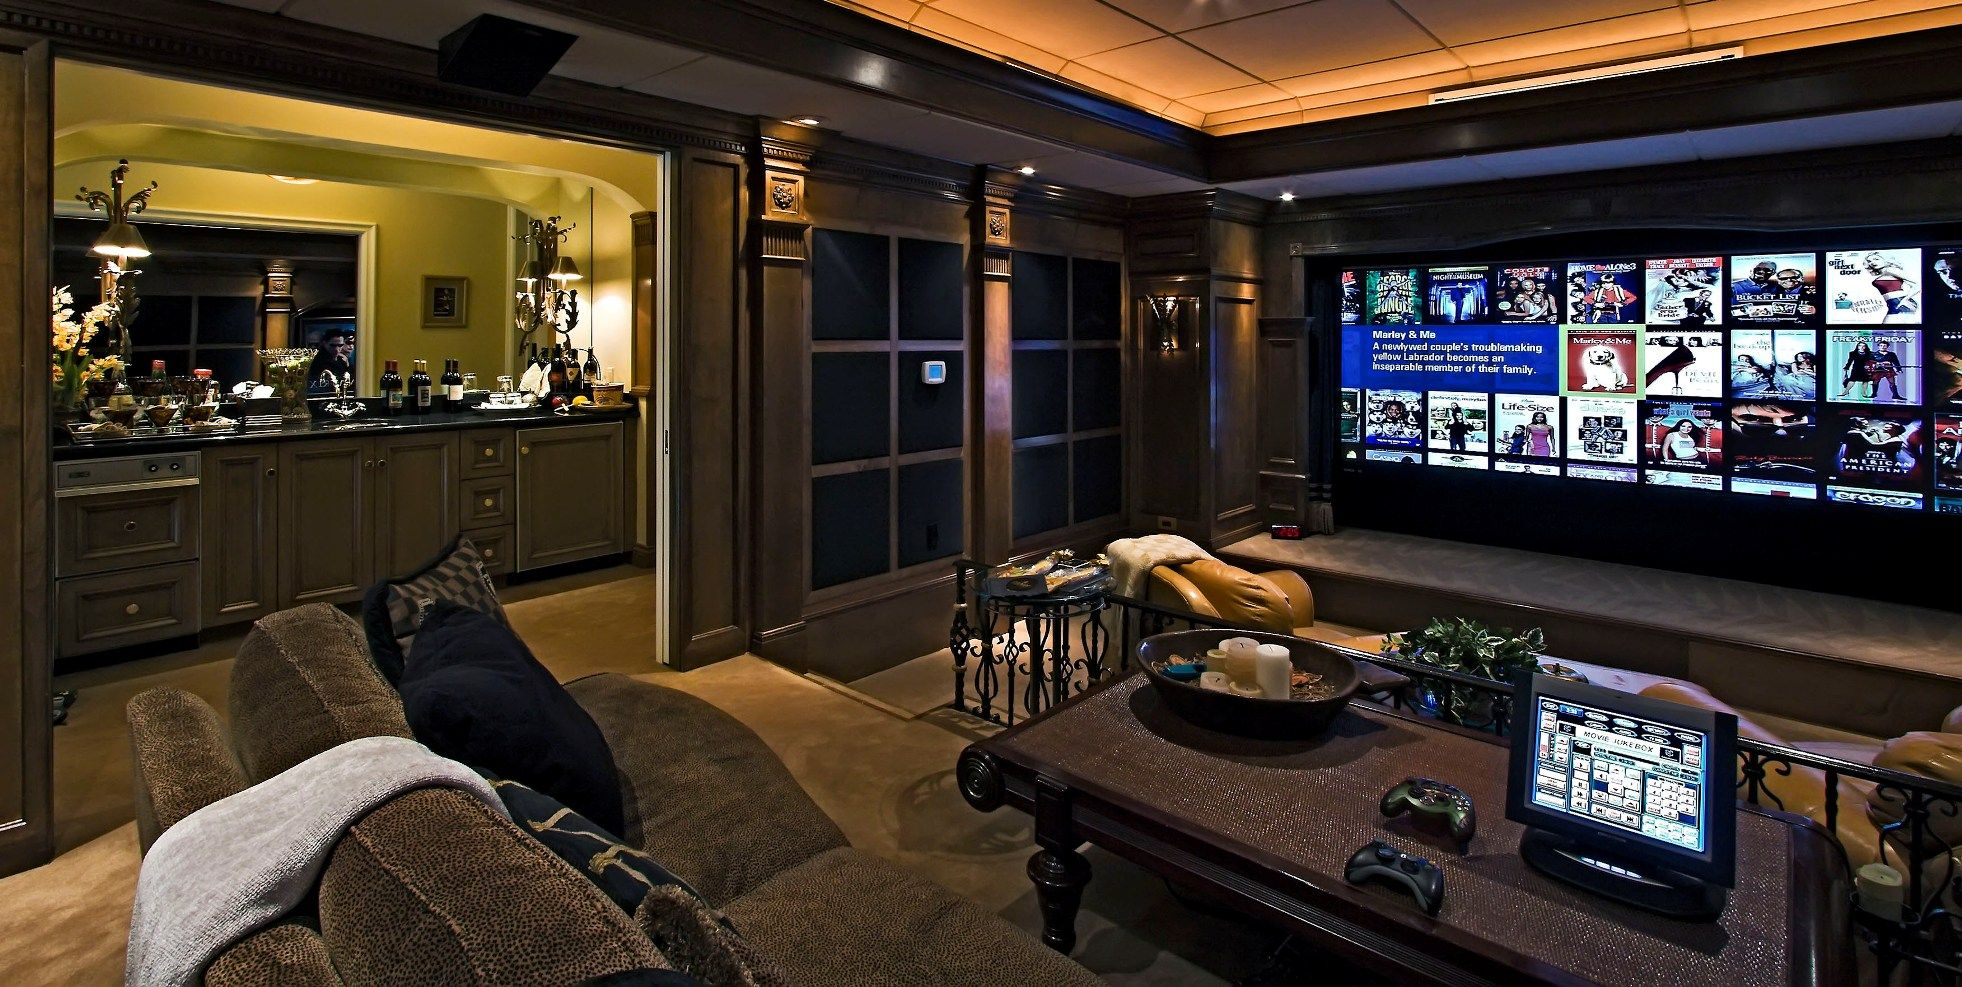 Home Theater Rooms Design Ideas small home theater contemporary home theater minneapolis by recent contemporary media room Fascinating Home Theater Interior Design Decorating Ideas With Brown Sofa Wooden Table Wooden Floor Glass Windows Kitcen Cabinet Special Lighting Big Screen